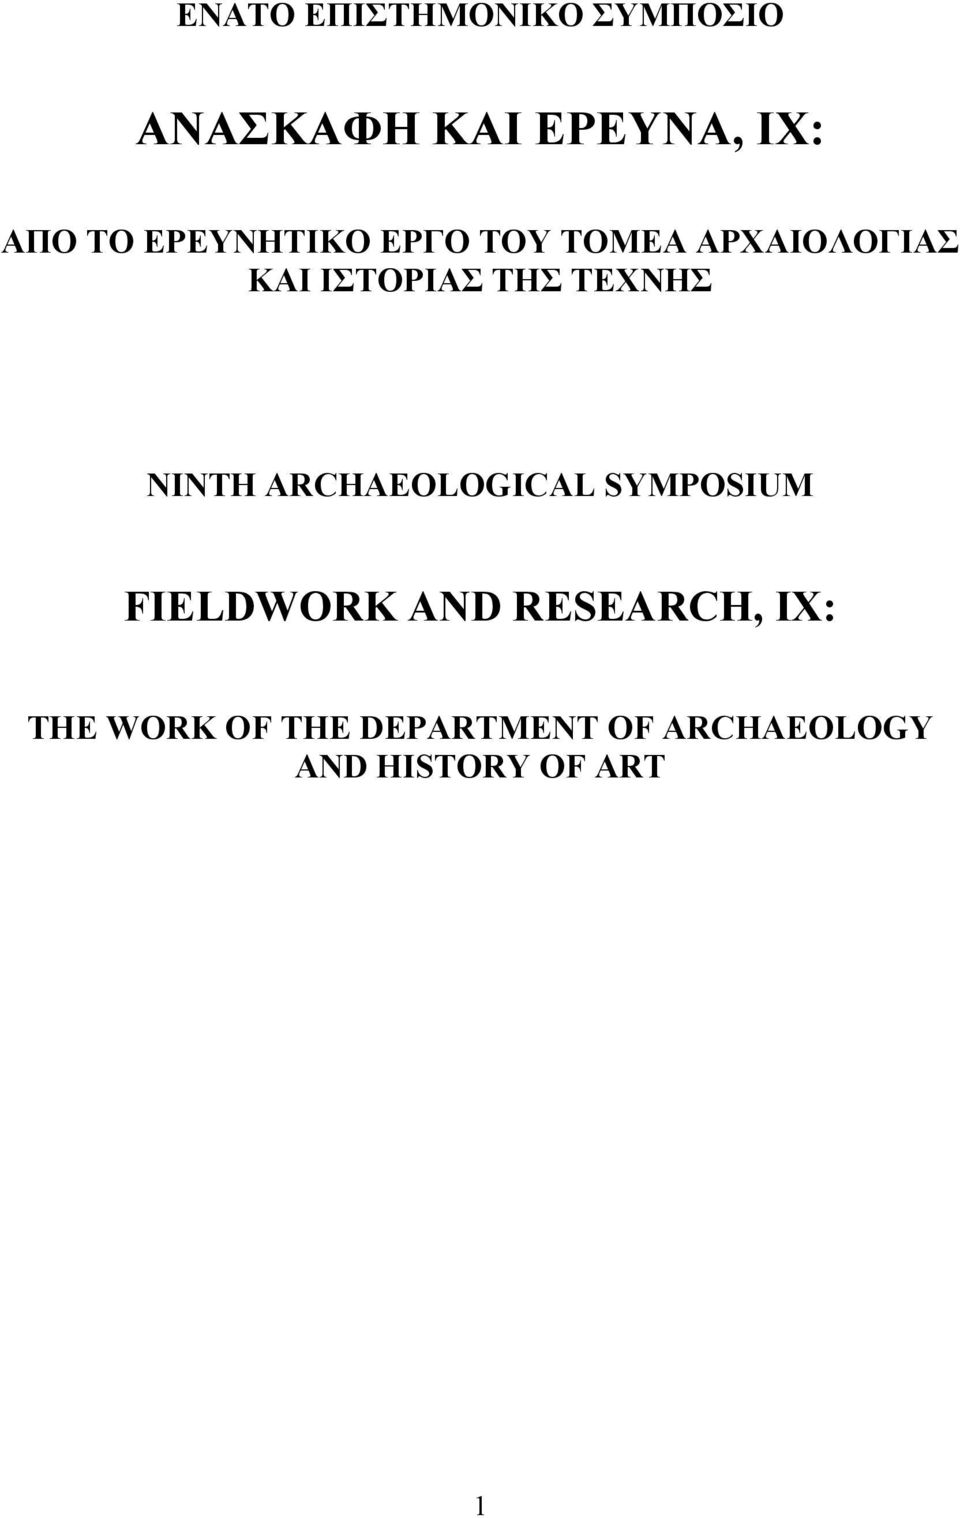 ΤΕΧΝΗΣ NINTH ARCHAEOLOGICAL SYMPOSIUM FIELDWORK AND